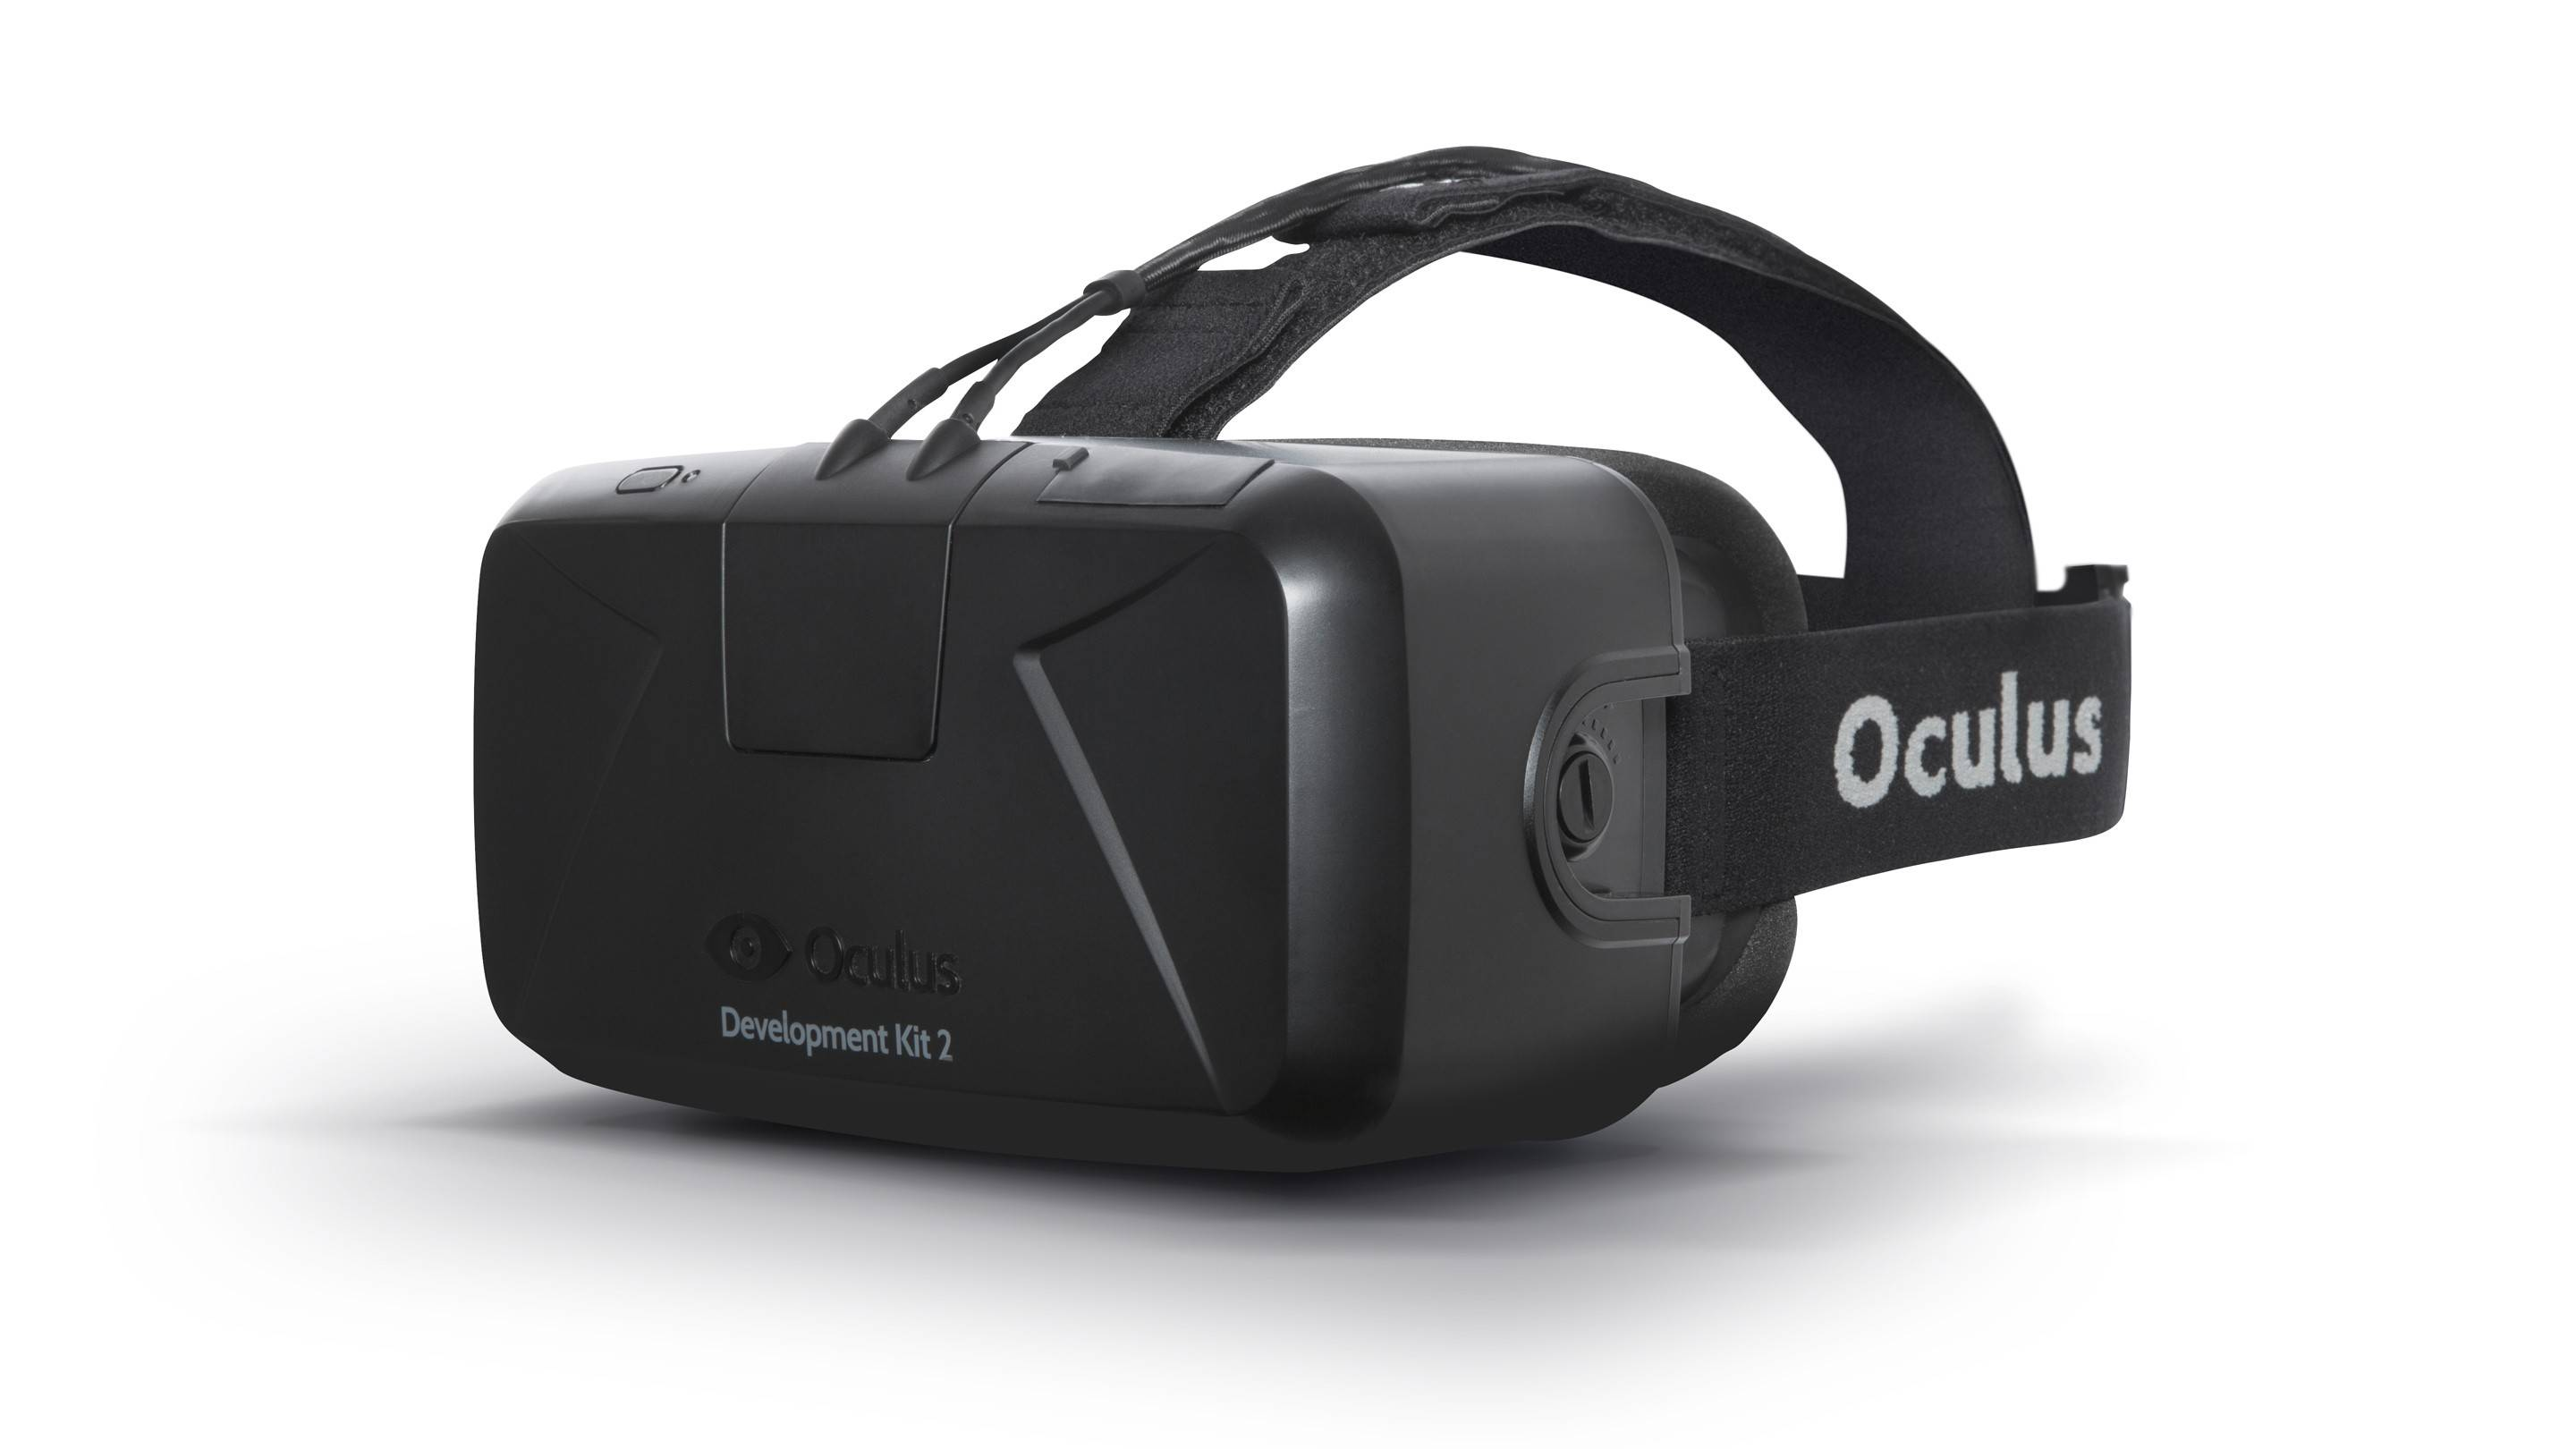 Oculus VR Inc. has a plan for making virtual reality mainstream: Replicate Google Inc.'s success with Android. Facebook Inc. agreed in March to acquire Oculus for about $2 billion, betting that headsets simulating reality would be the future of computing and communication.